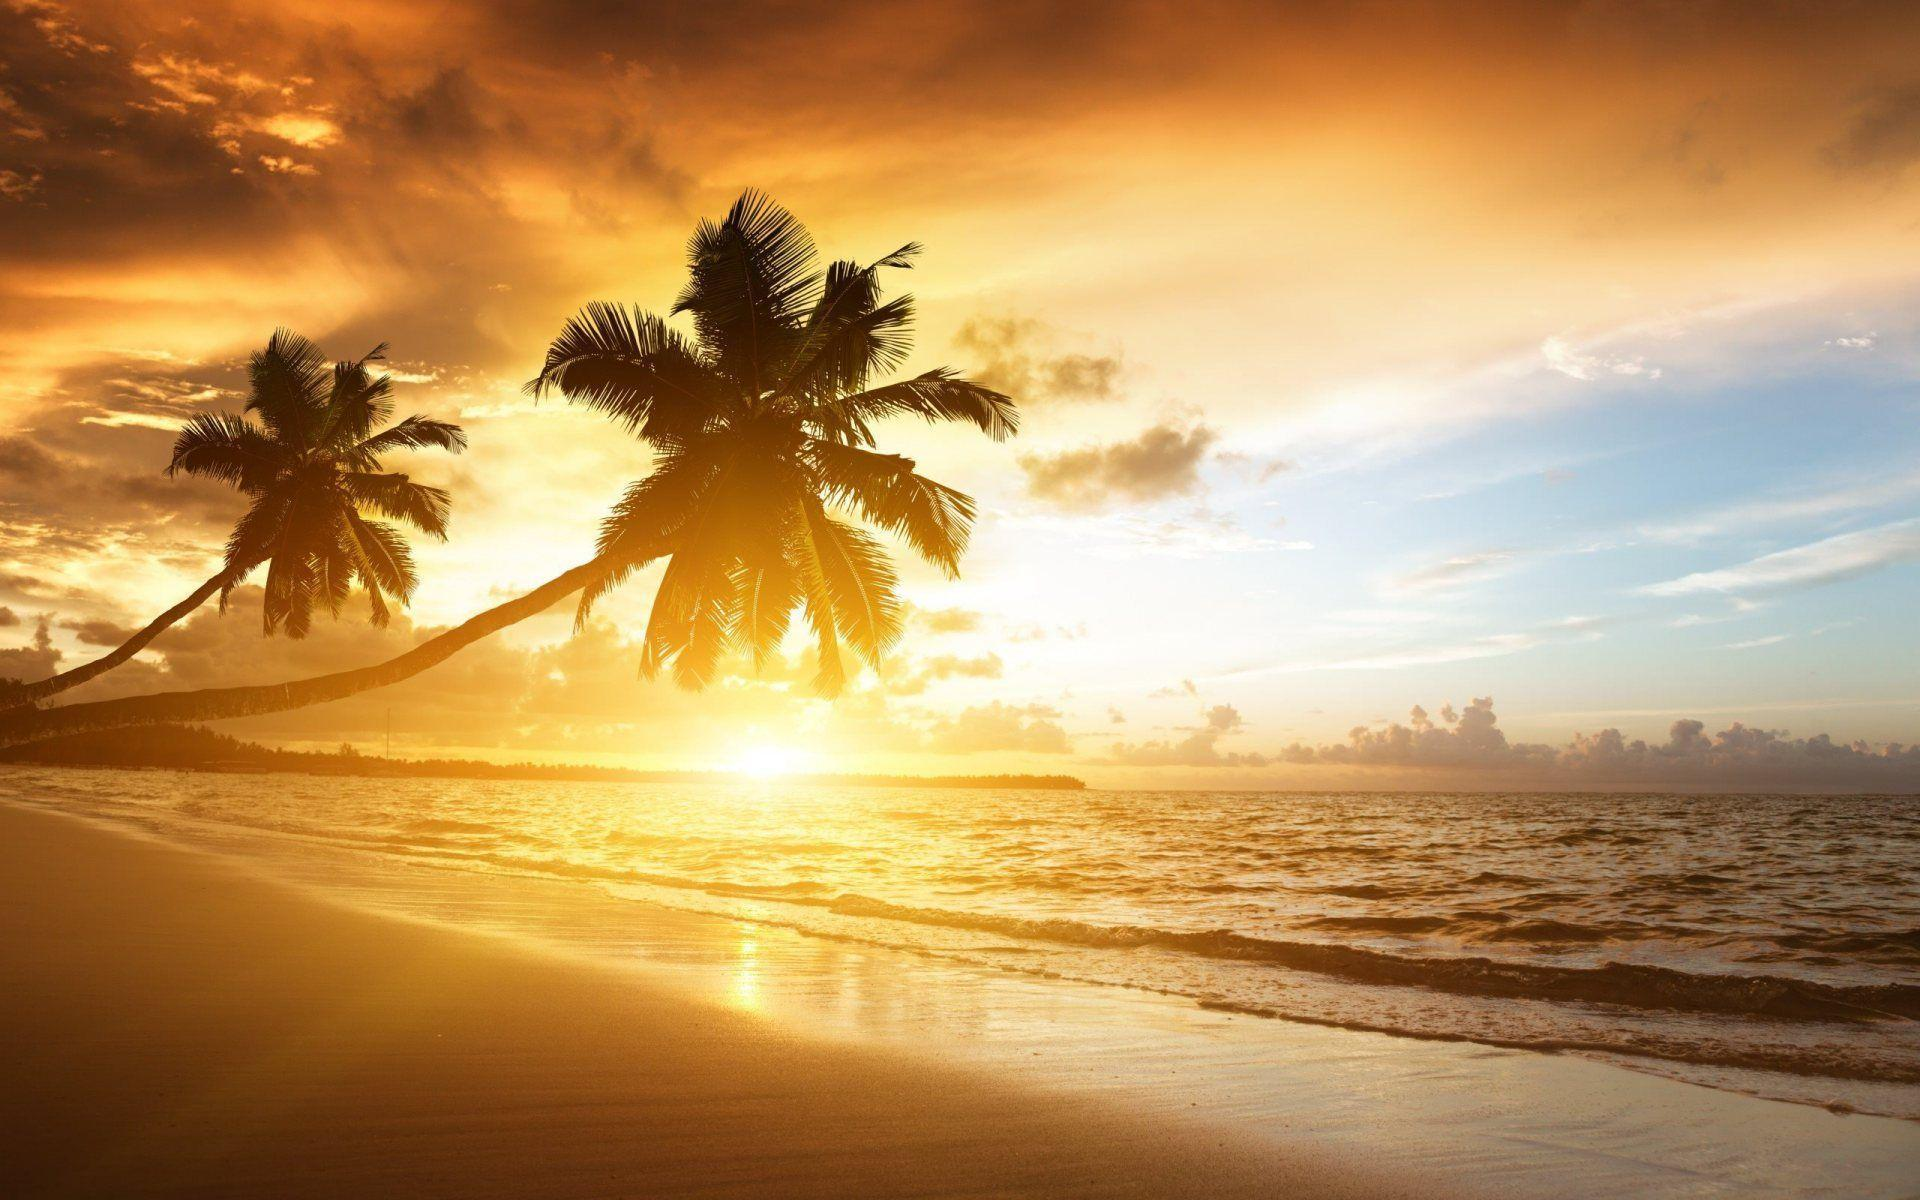 Beach Sunset Wallpapers - HD Wallpapers OS, Free HD Desktop ...